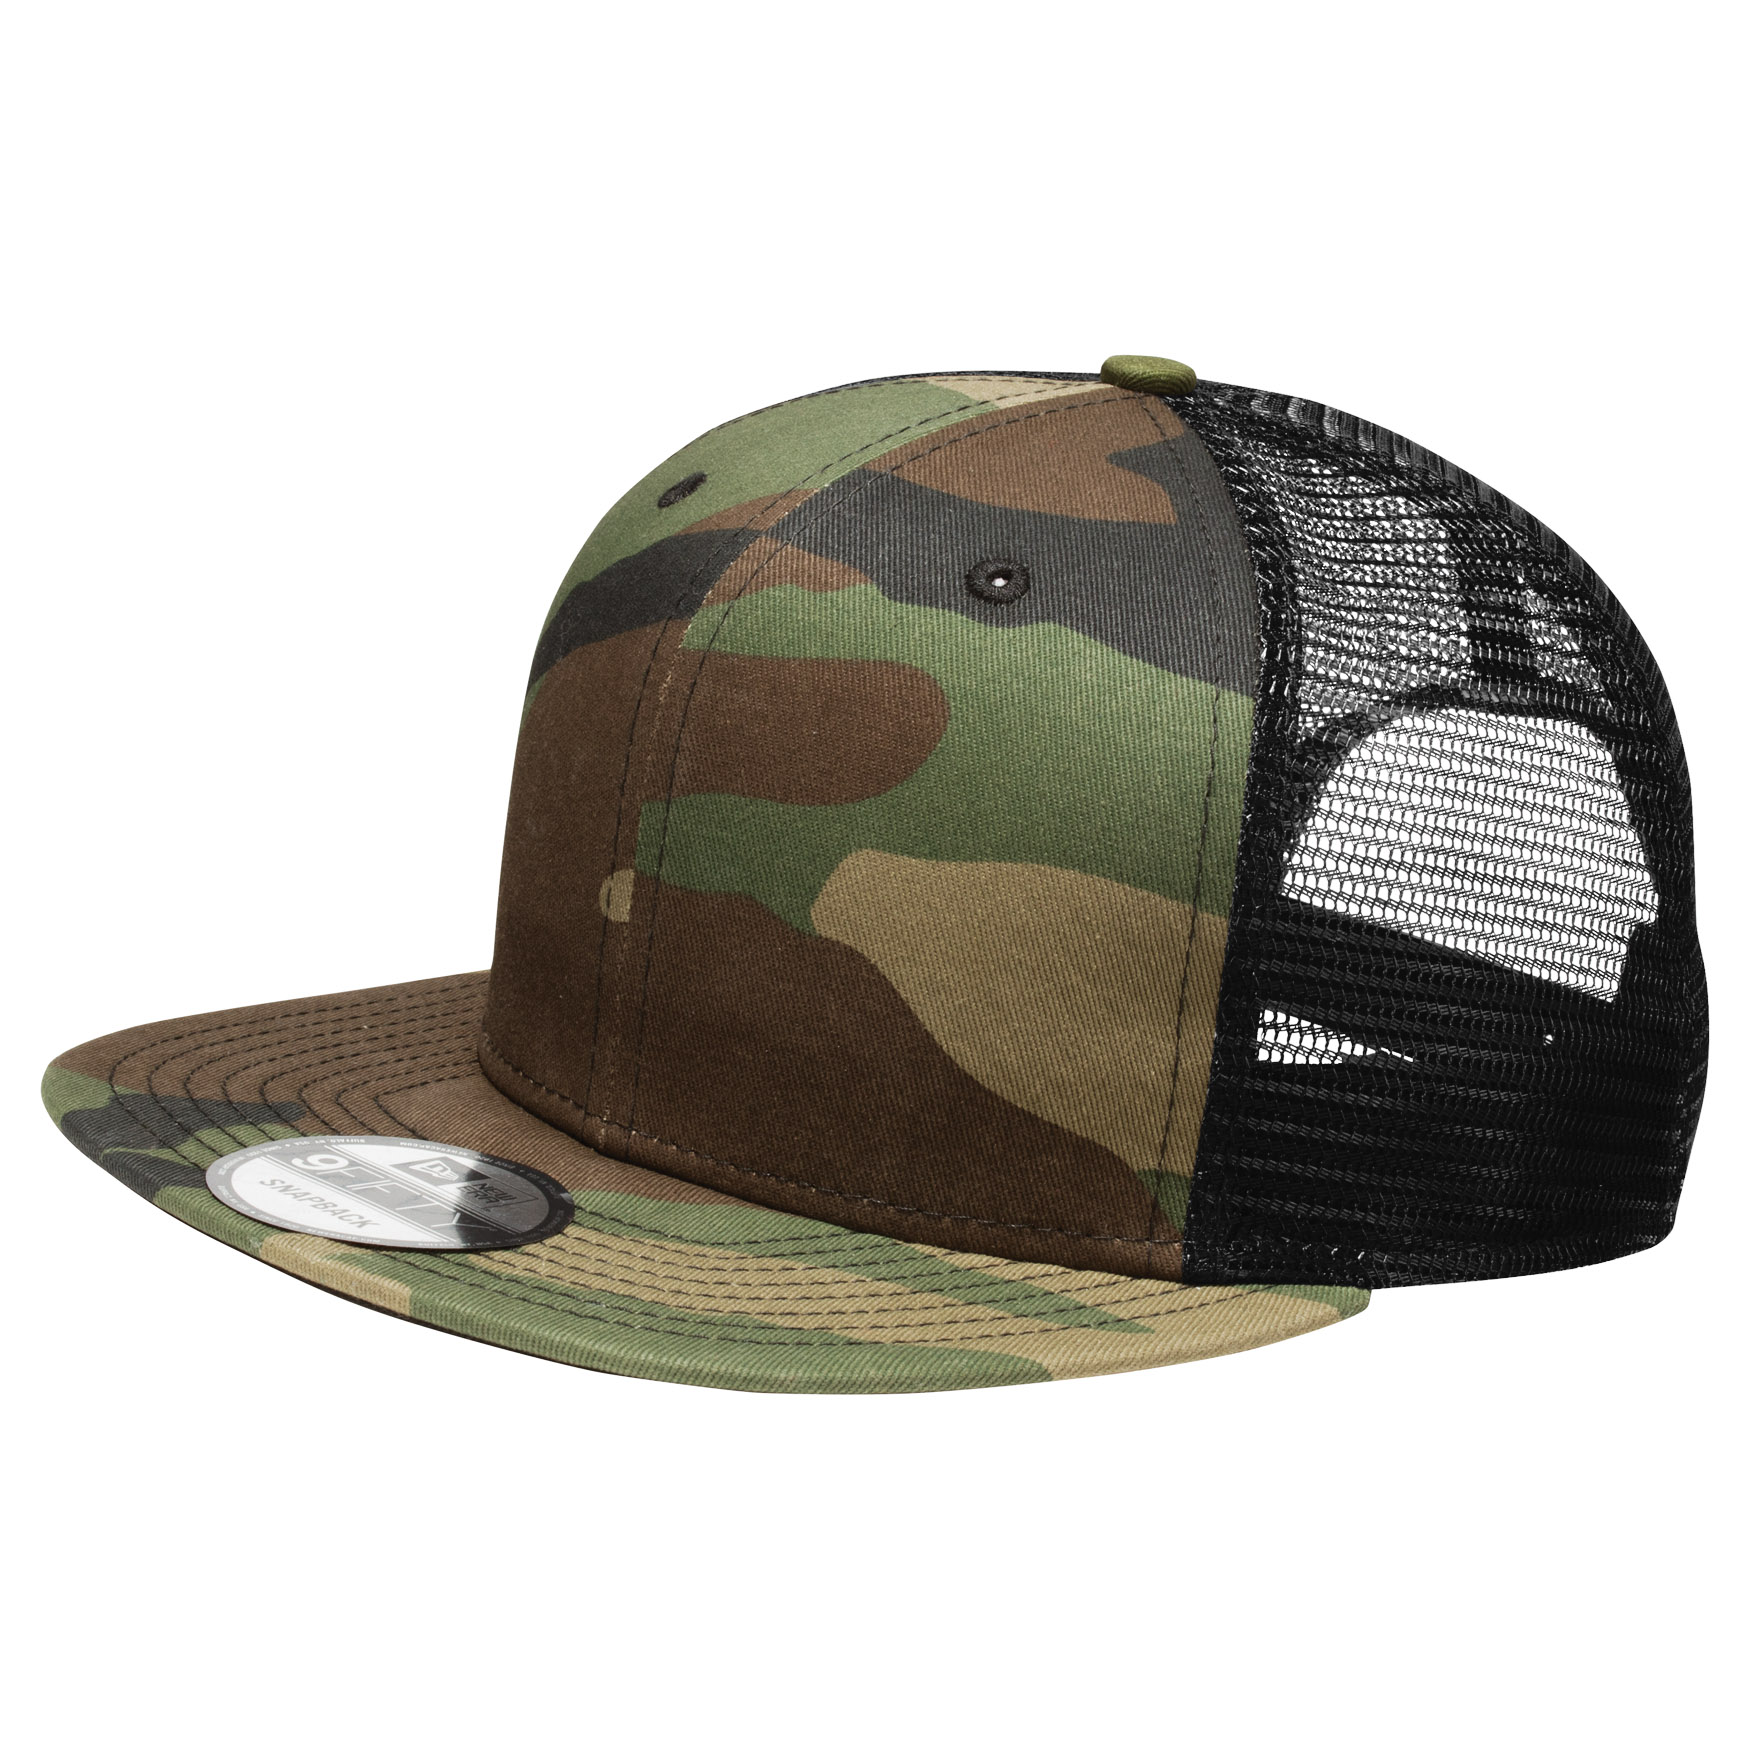 New Era NE403 Original Fit Snapback Trucker Cap - Camo Black ... 05ccc2ff341